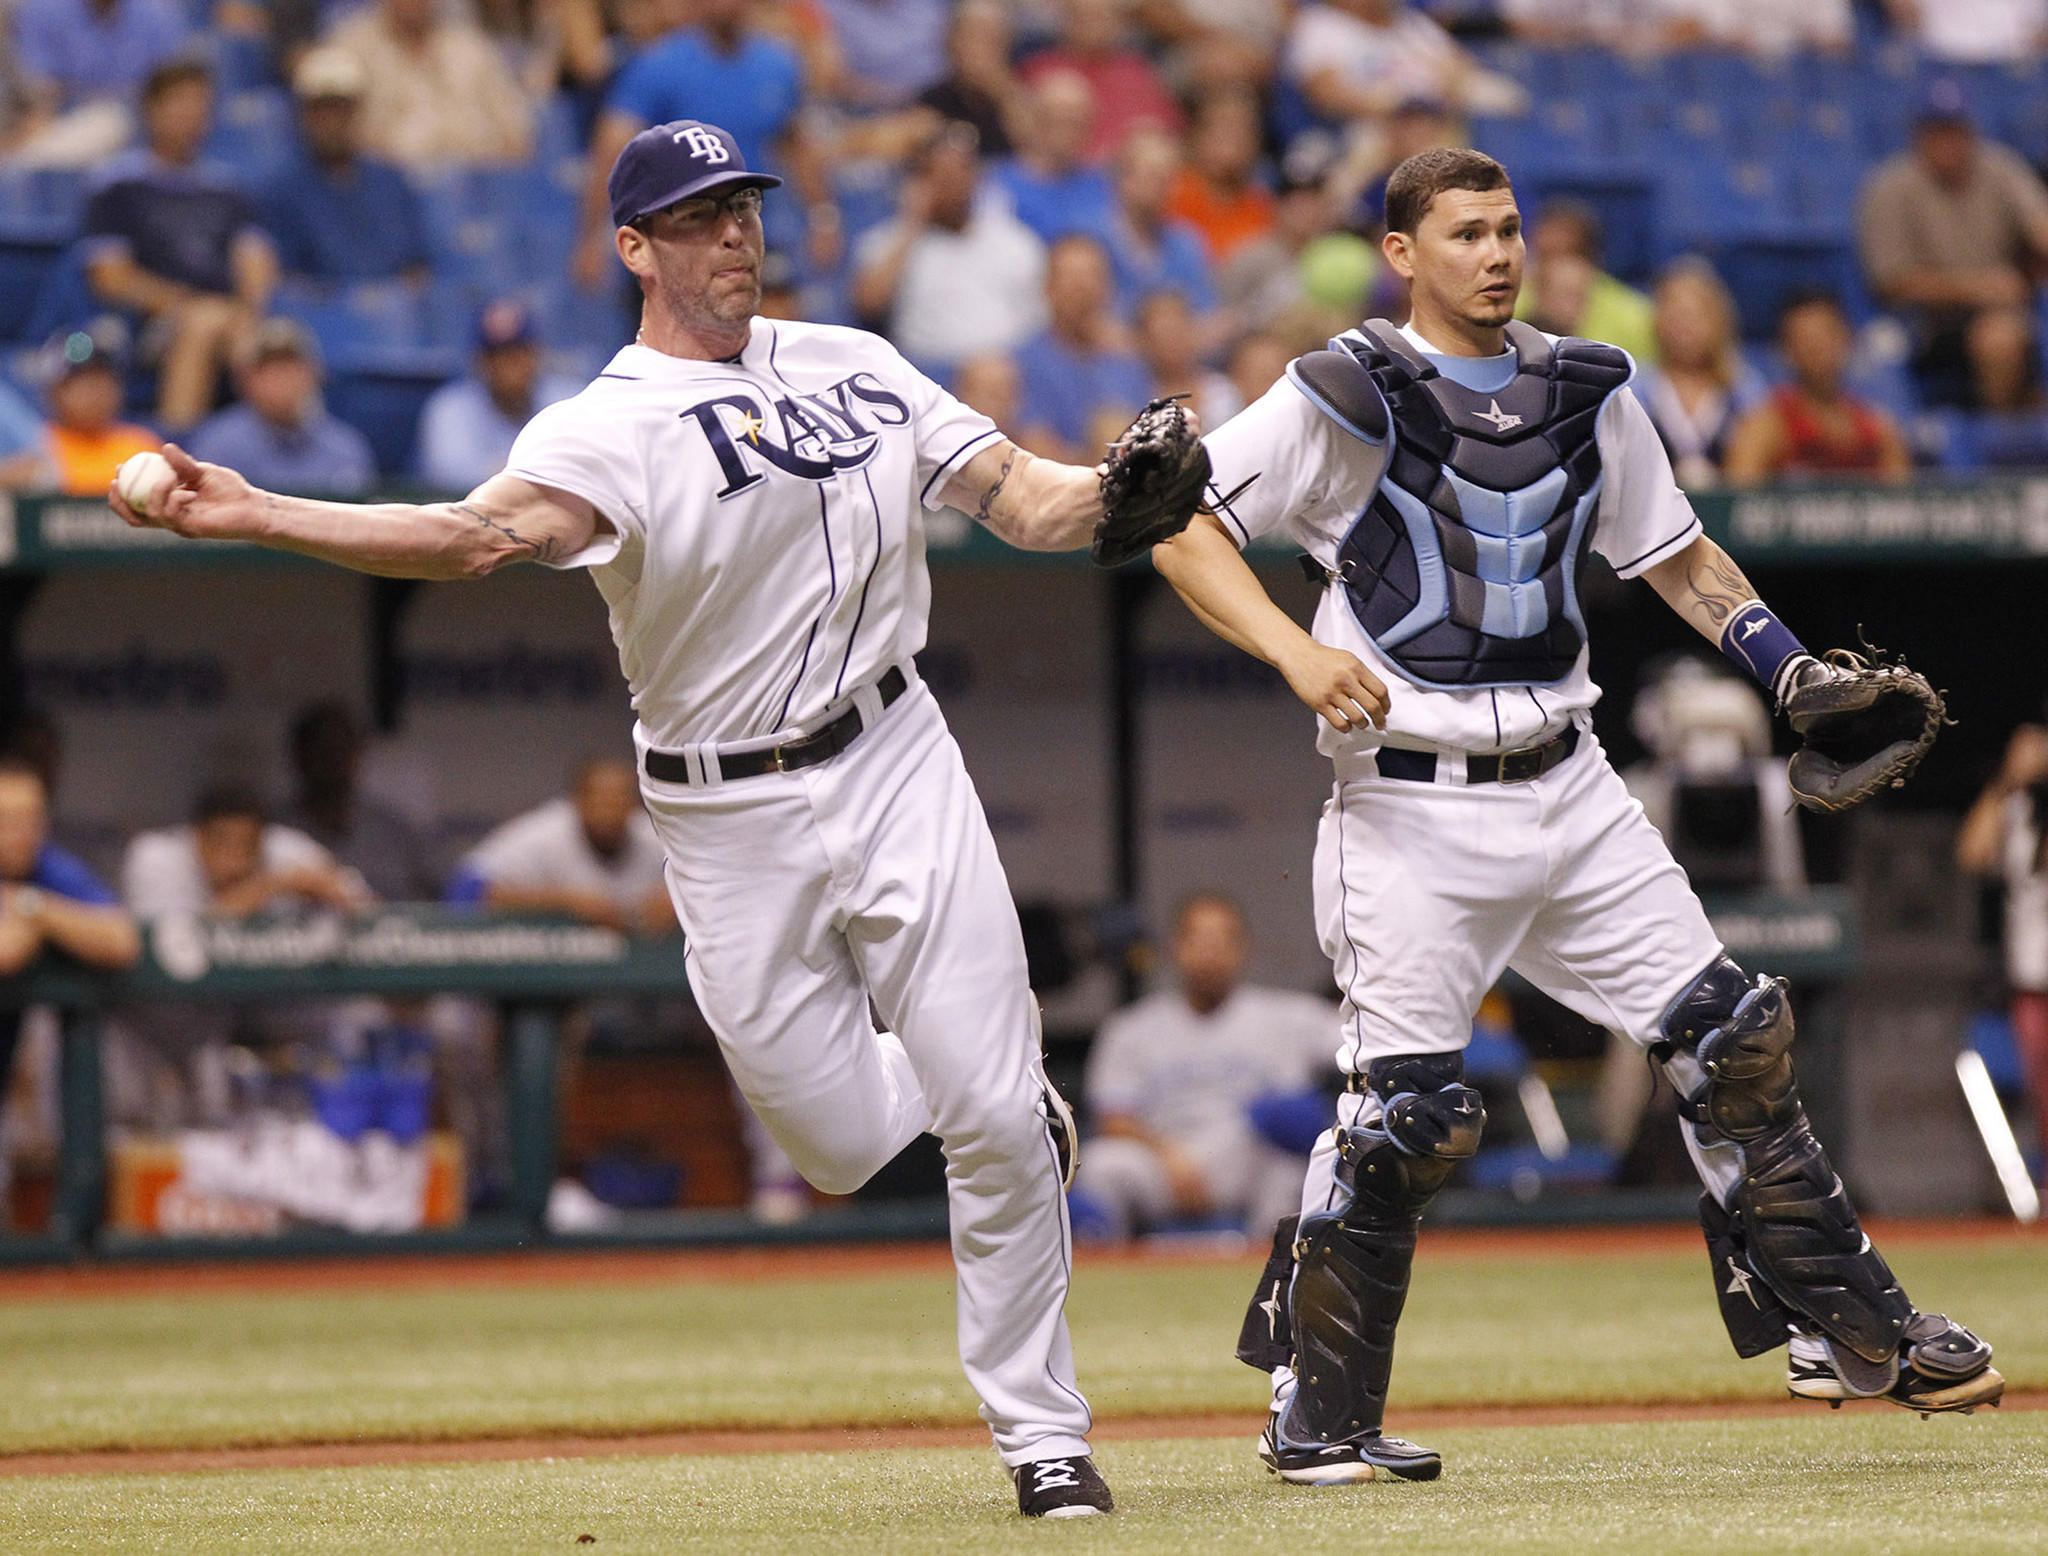 The Rays' Kyle Farnsworth throws out a runner on a bunt.